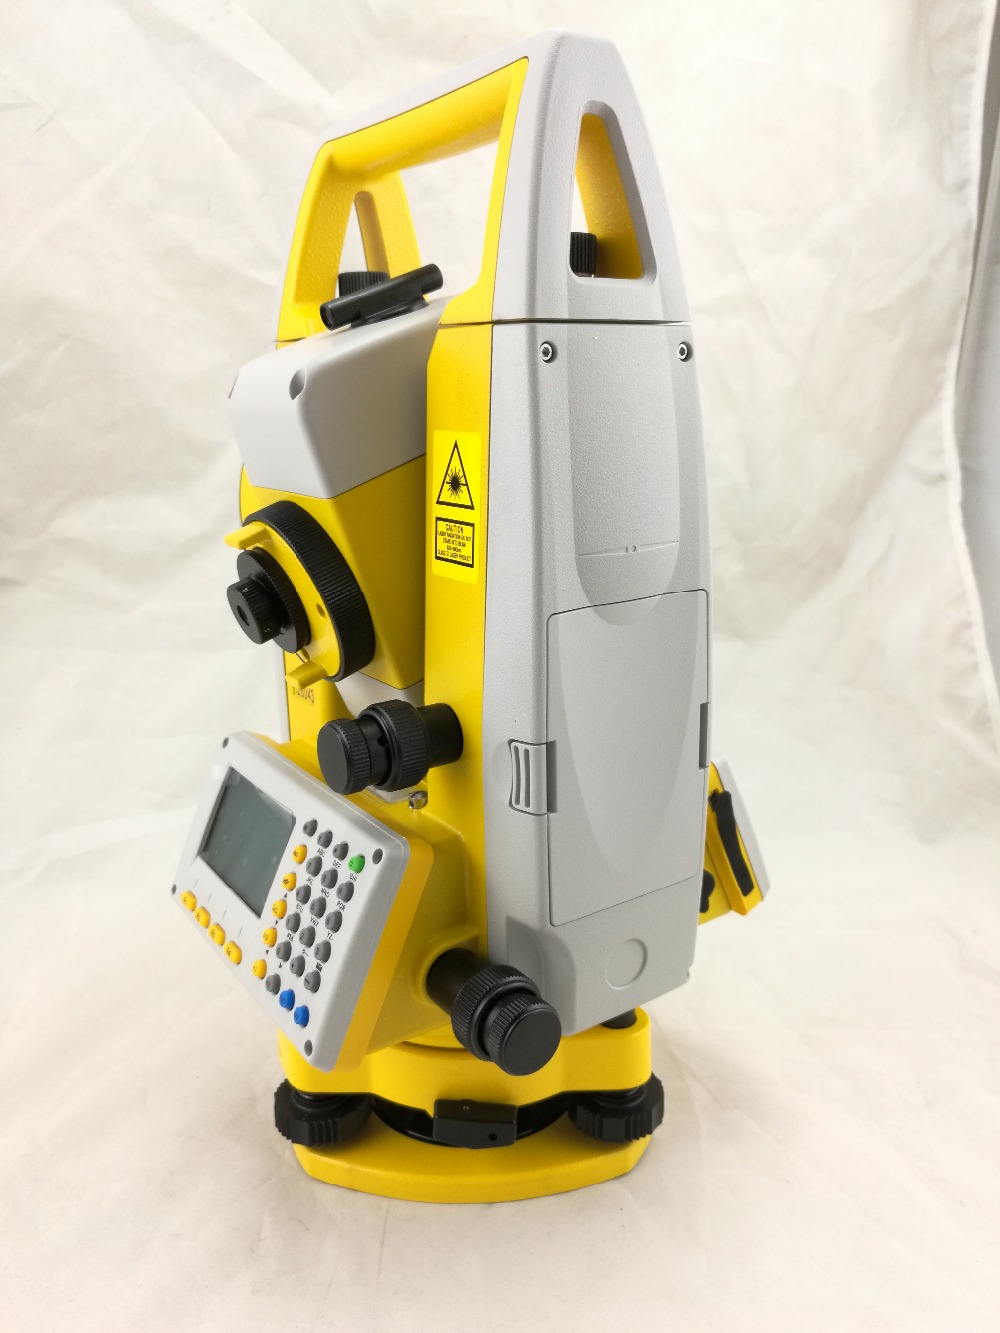 Total Station,SD card derivative according to, NTS-312R+, South, whole sale, retail все цены